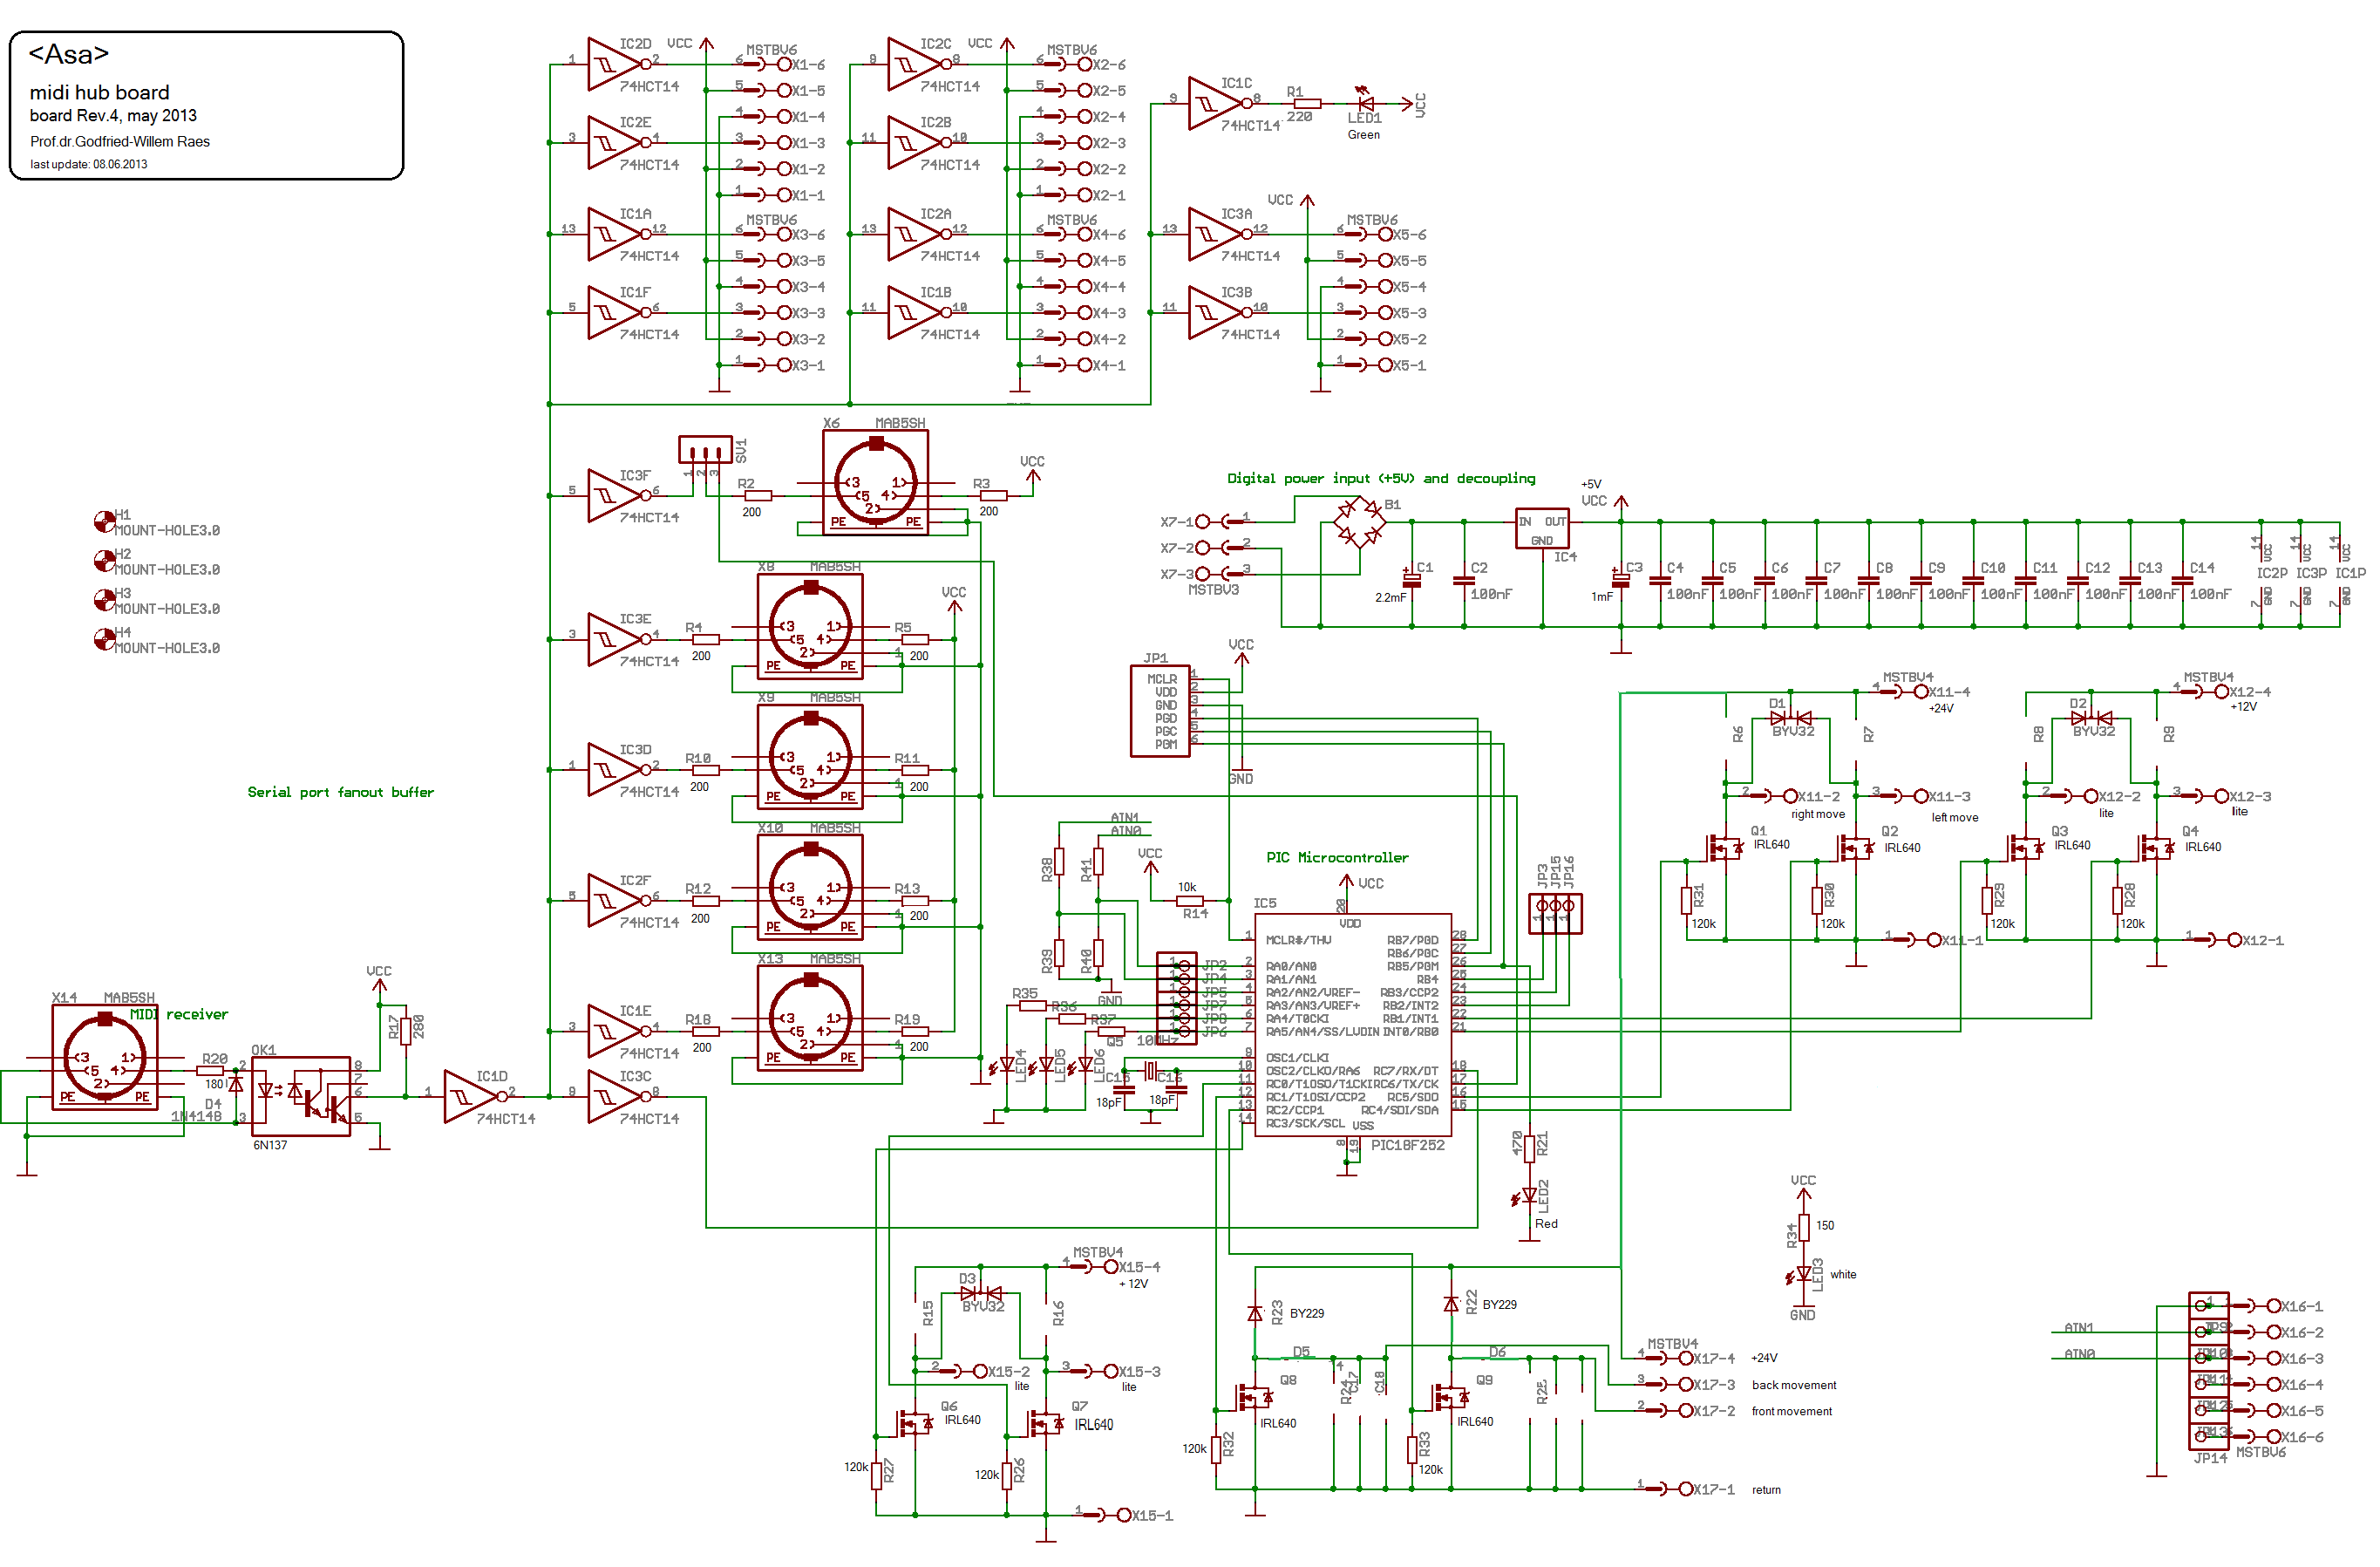 Asa An Automated Alto Saxophone By Godfried Willem Raes Robotics Wiring Diagram Start Coding For The Pic18f2525 Firmware On Midi Hub Board Controlling Four Lights And All Motion Of Robot Source Code Can Be Found Here